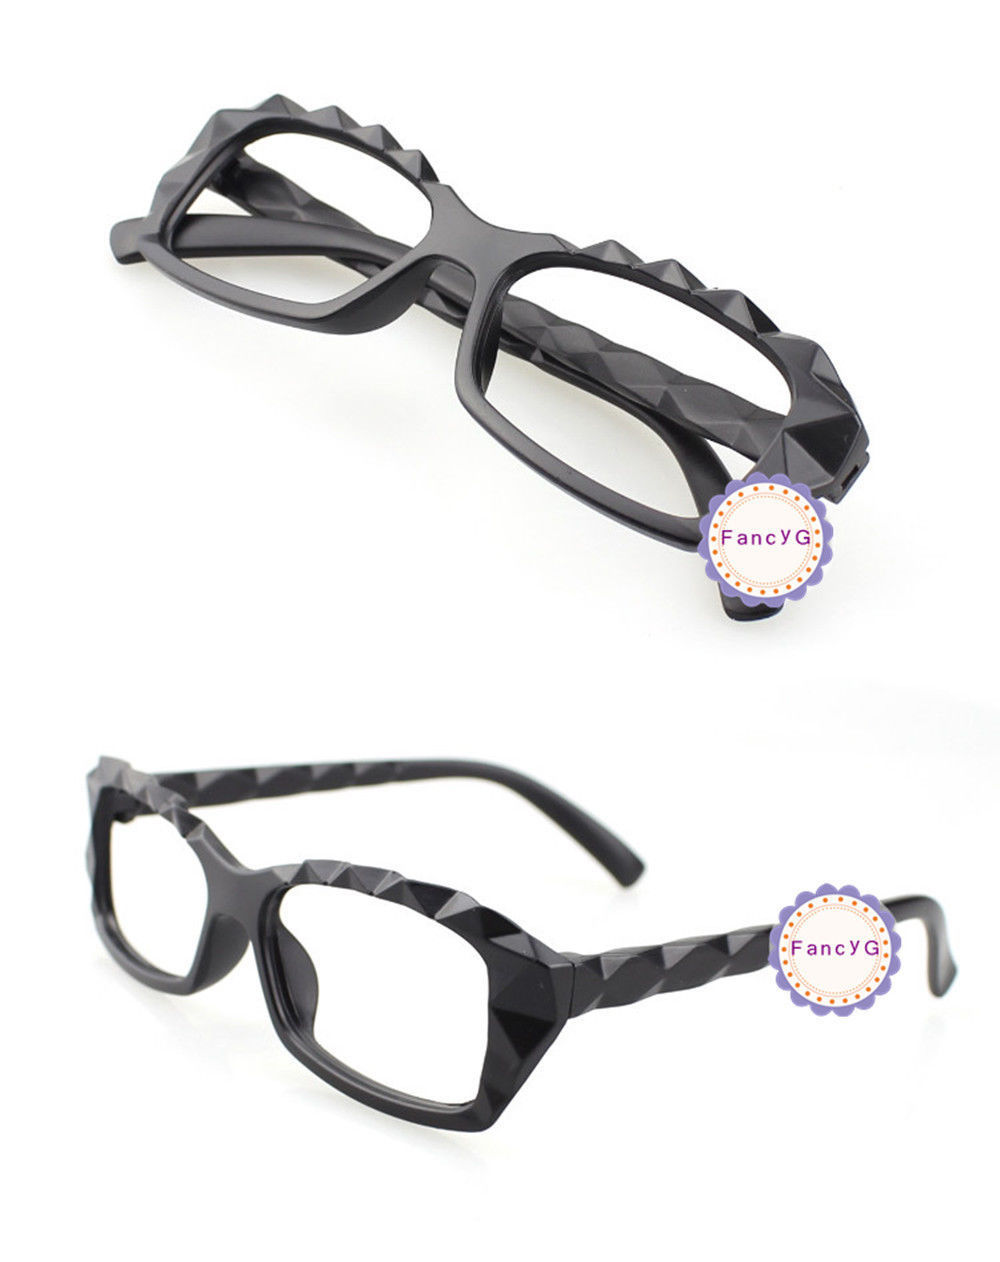 Mat Black Retro Classic Diamond Cut Fashion Glasses Frame Unisex Eyewear No Lens